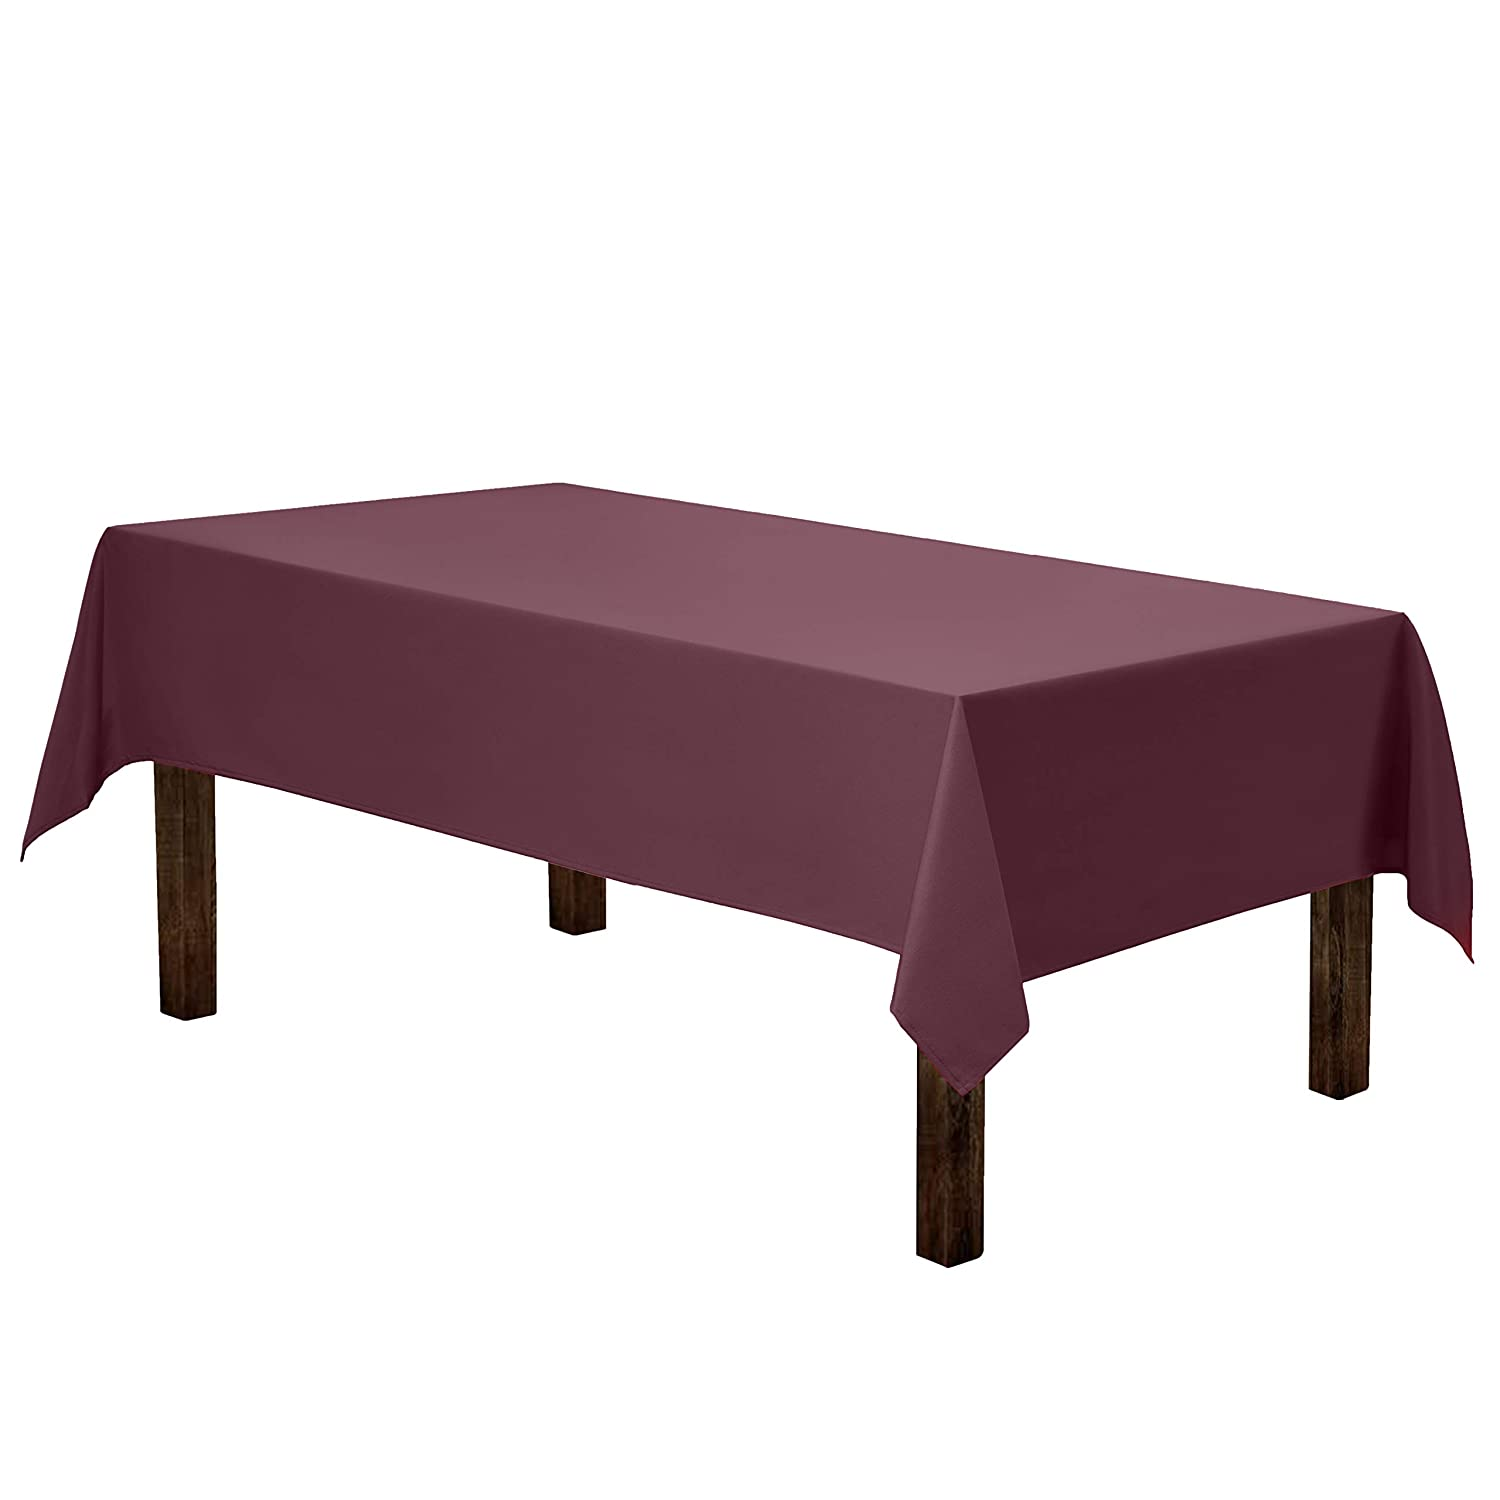 Gee Di Moda Rectangle Tablecloth - 60 x 84 Inch - Burgundy Rectangular Table Cloth for 5 Foot Table in Washable Polyester - Great for Buffet Table, Parties, Holiday Dinner, Wedding & More